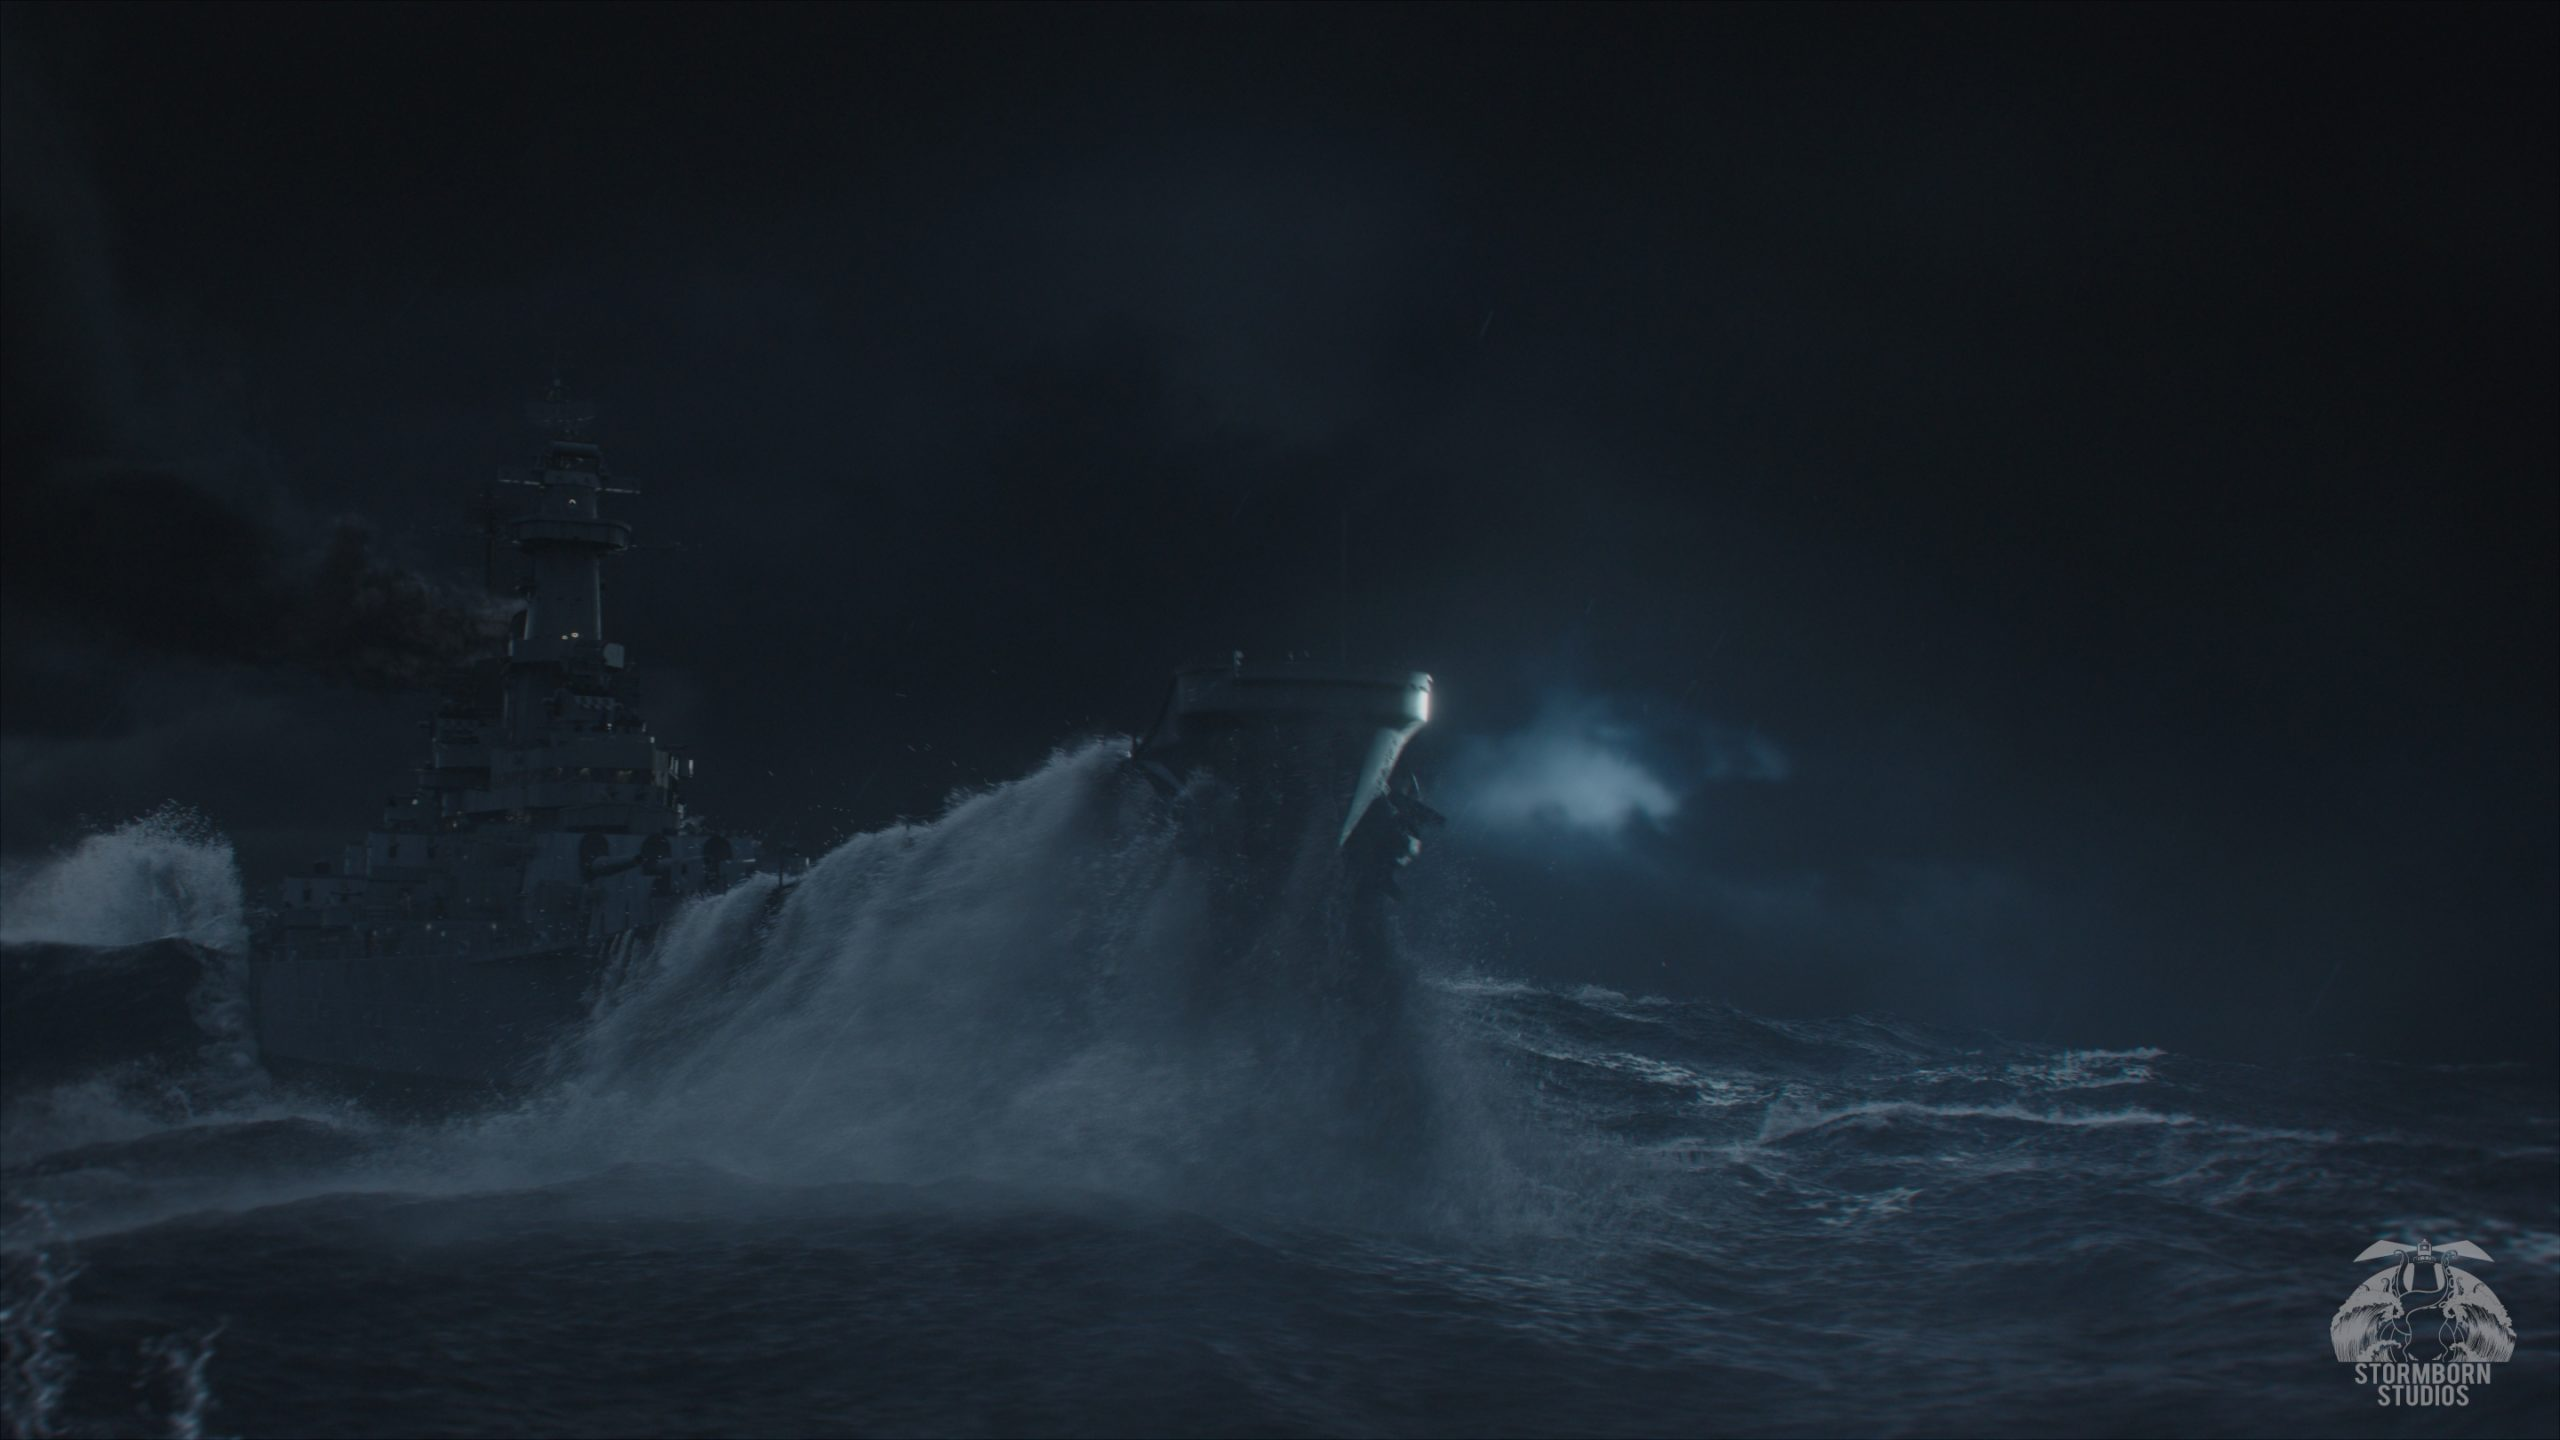 Stormborn Studios Ship in tidal wave